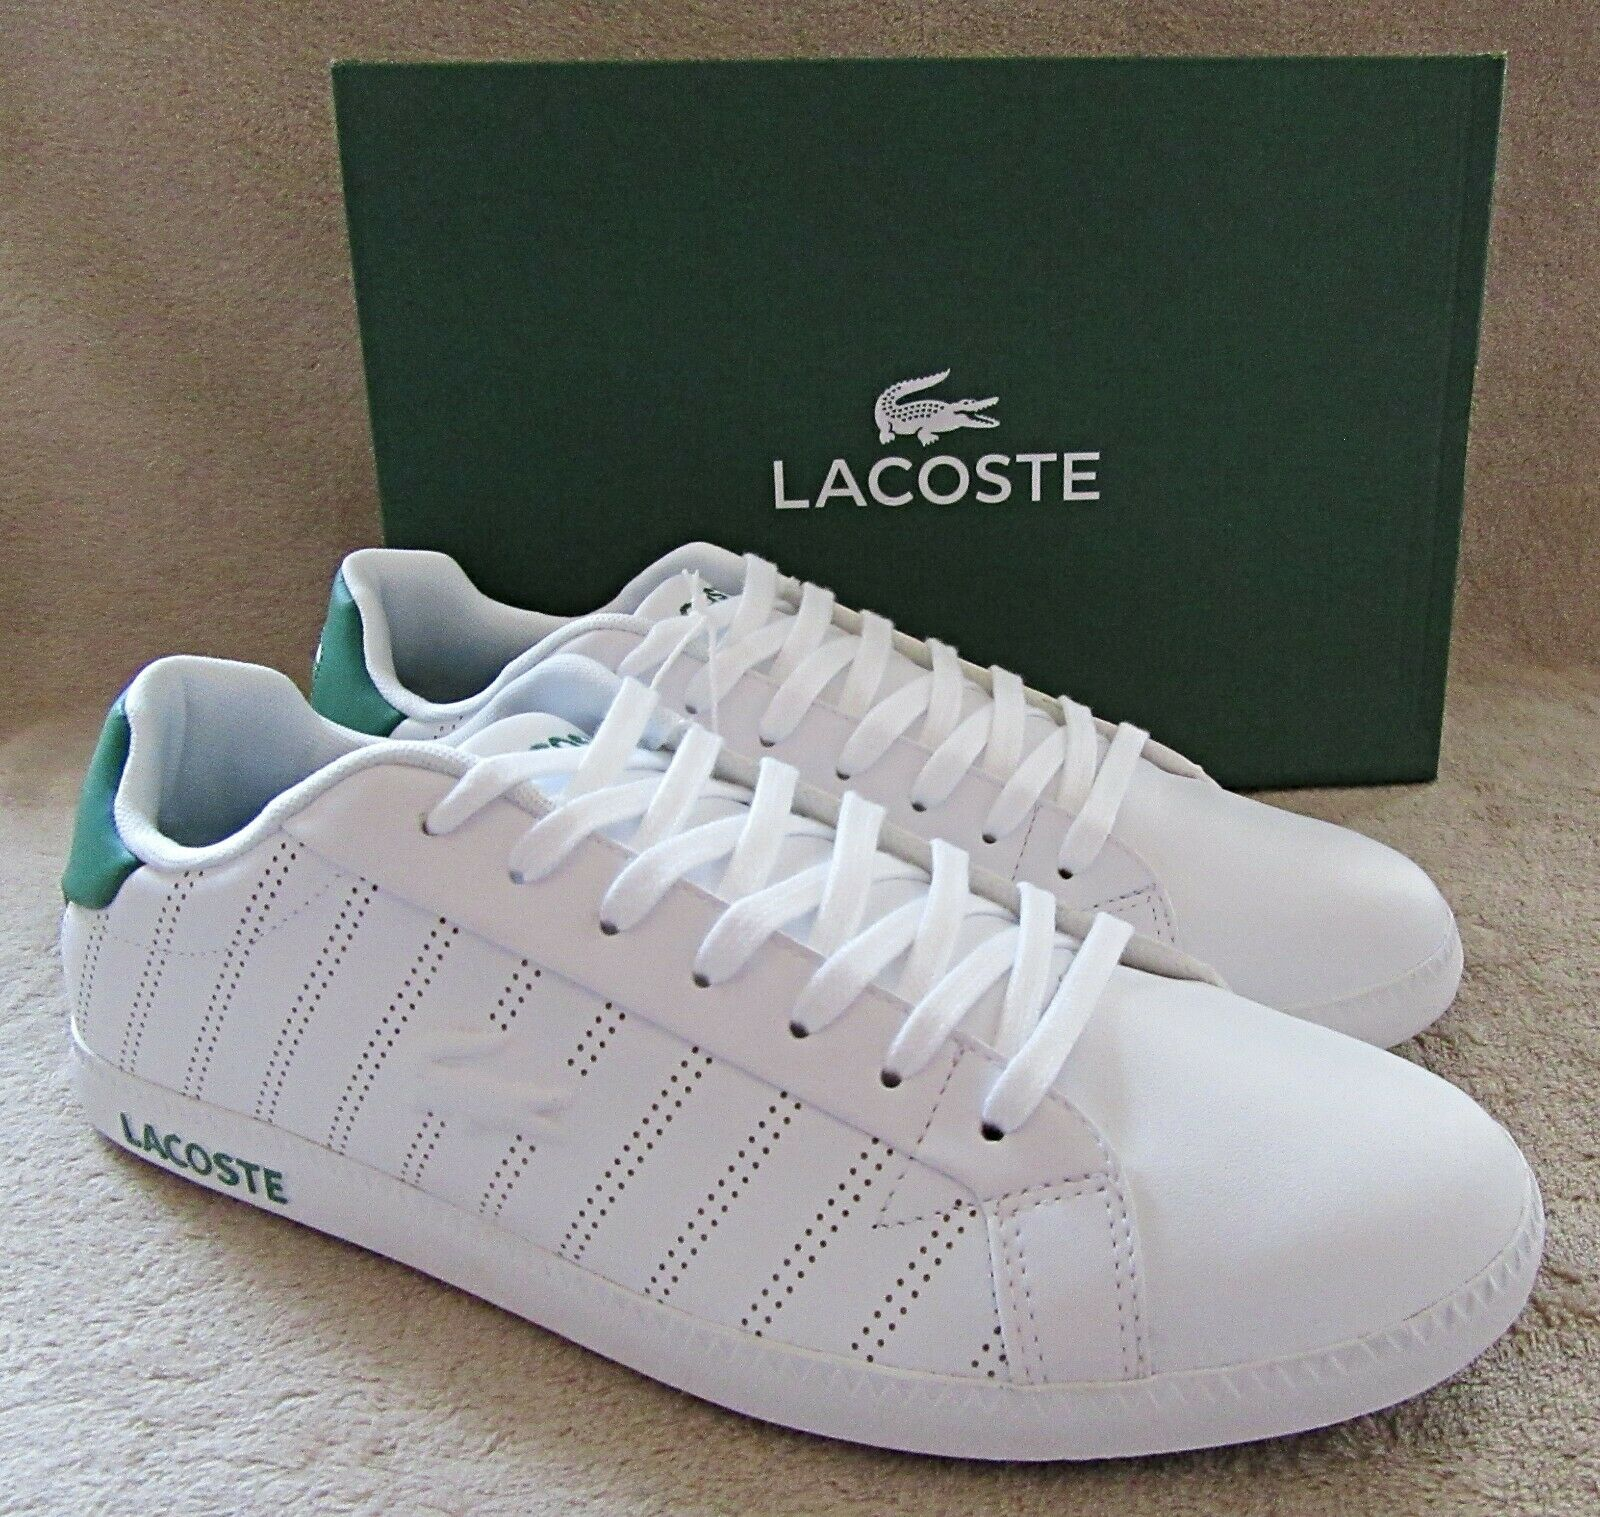 LACOSTE Graduate Mens White Green Leather Lace Sneakers shoes US 11 M NWB